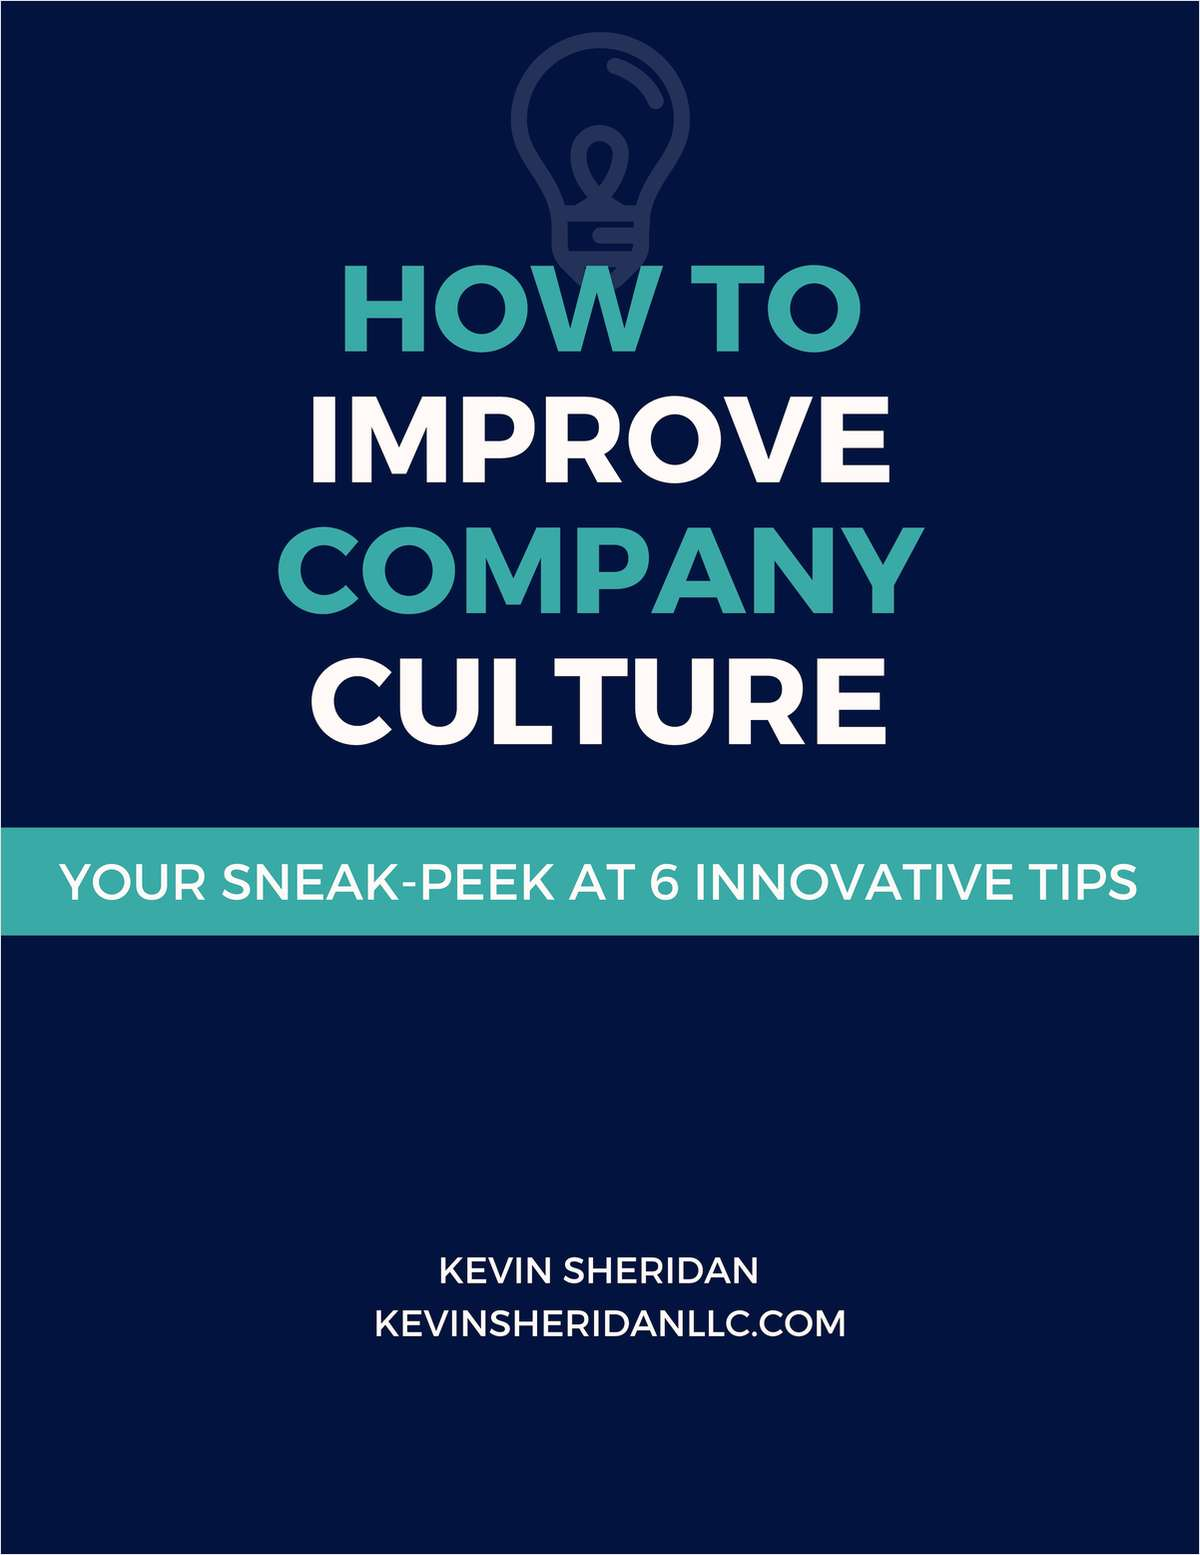 How to Improve Company Culture - Your Sneak-Peek at 6 Innovative Tips